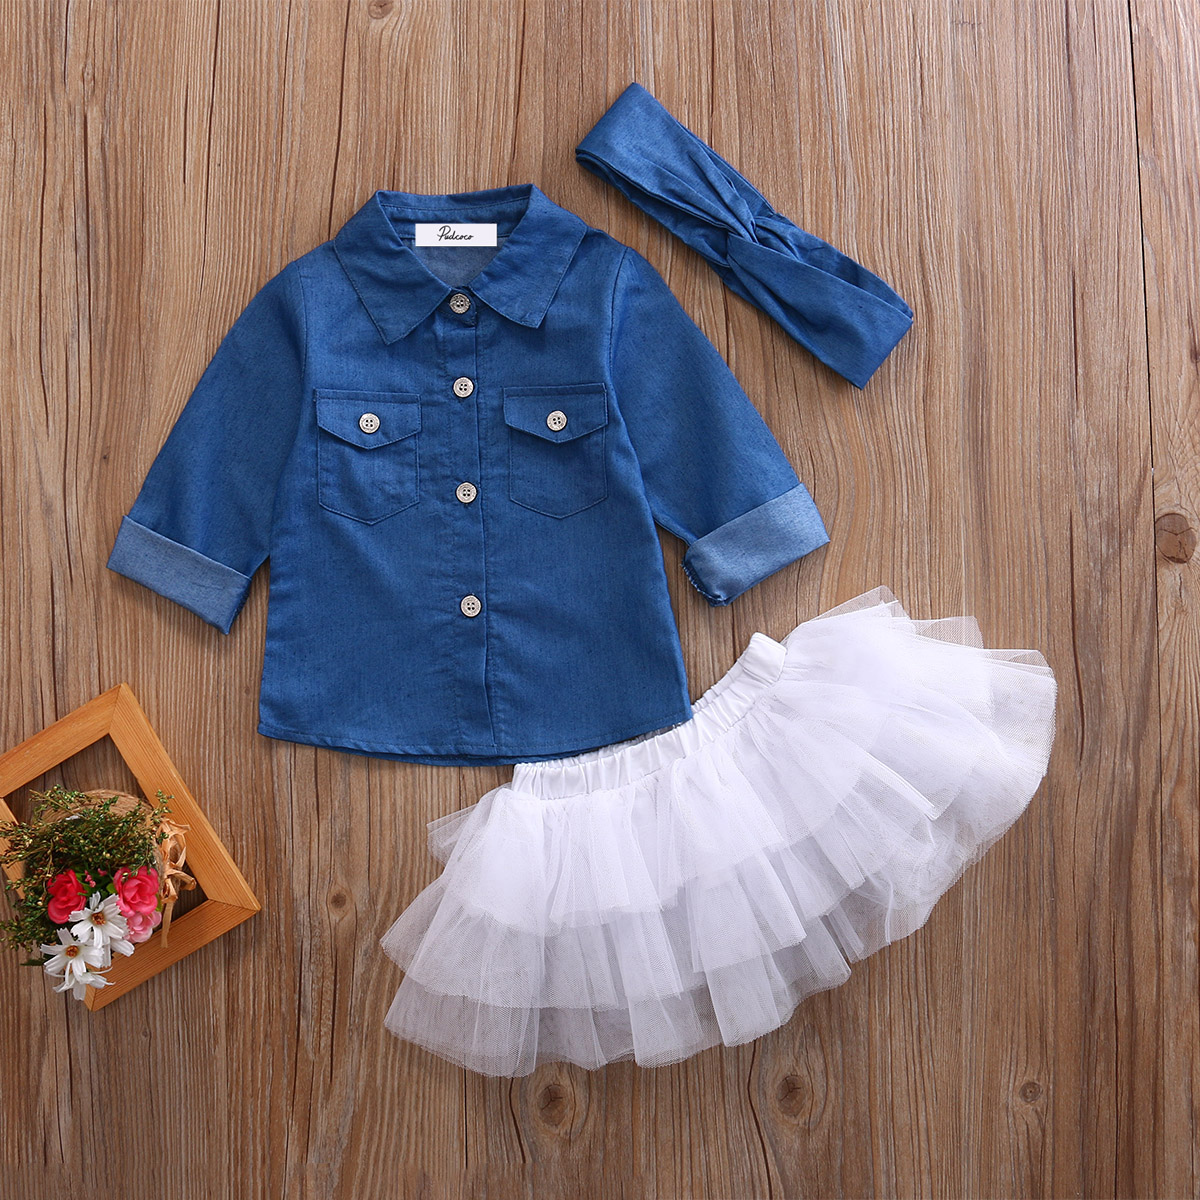 Kids Baby Girls Denim Tops T shirt+White Tutu Skirts+Headband 3pcs Outfits Clothes Set Summer Long Sleeve Children Clothing Sets hot sale 2016 kids boys girls summer tops baby t shirts fashion leaf print sleeveless kniting tee baby clothes children t shirt